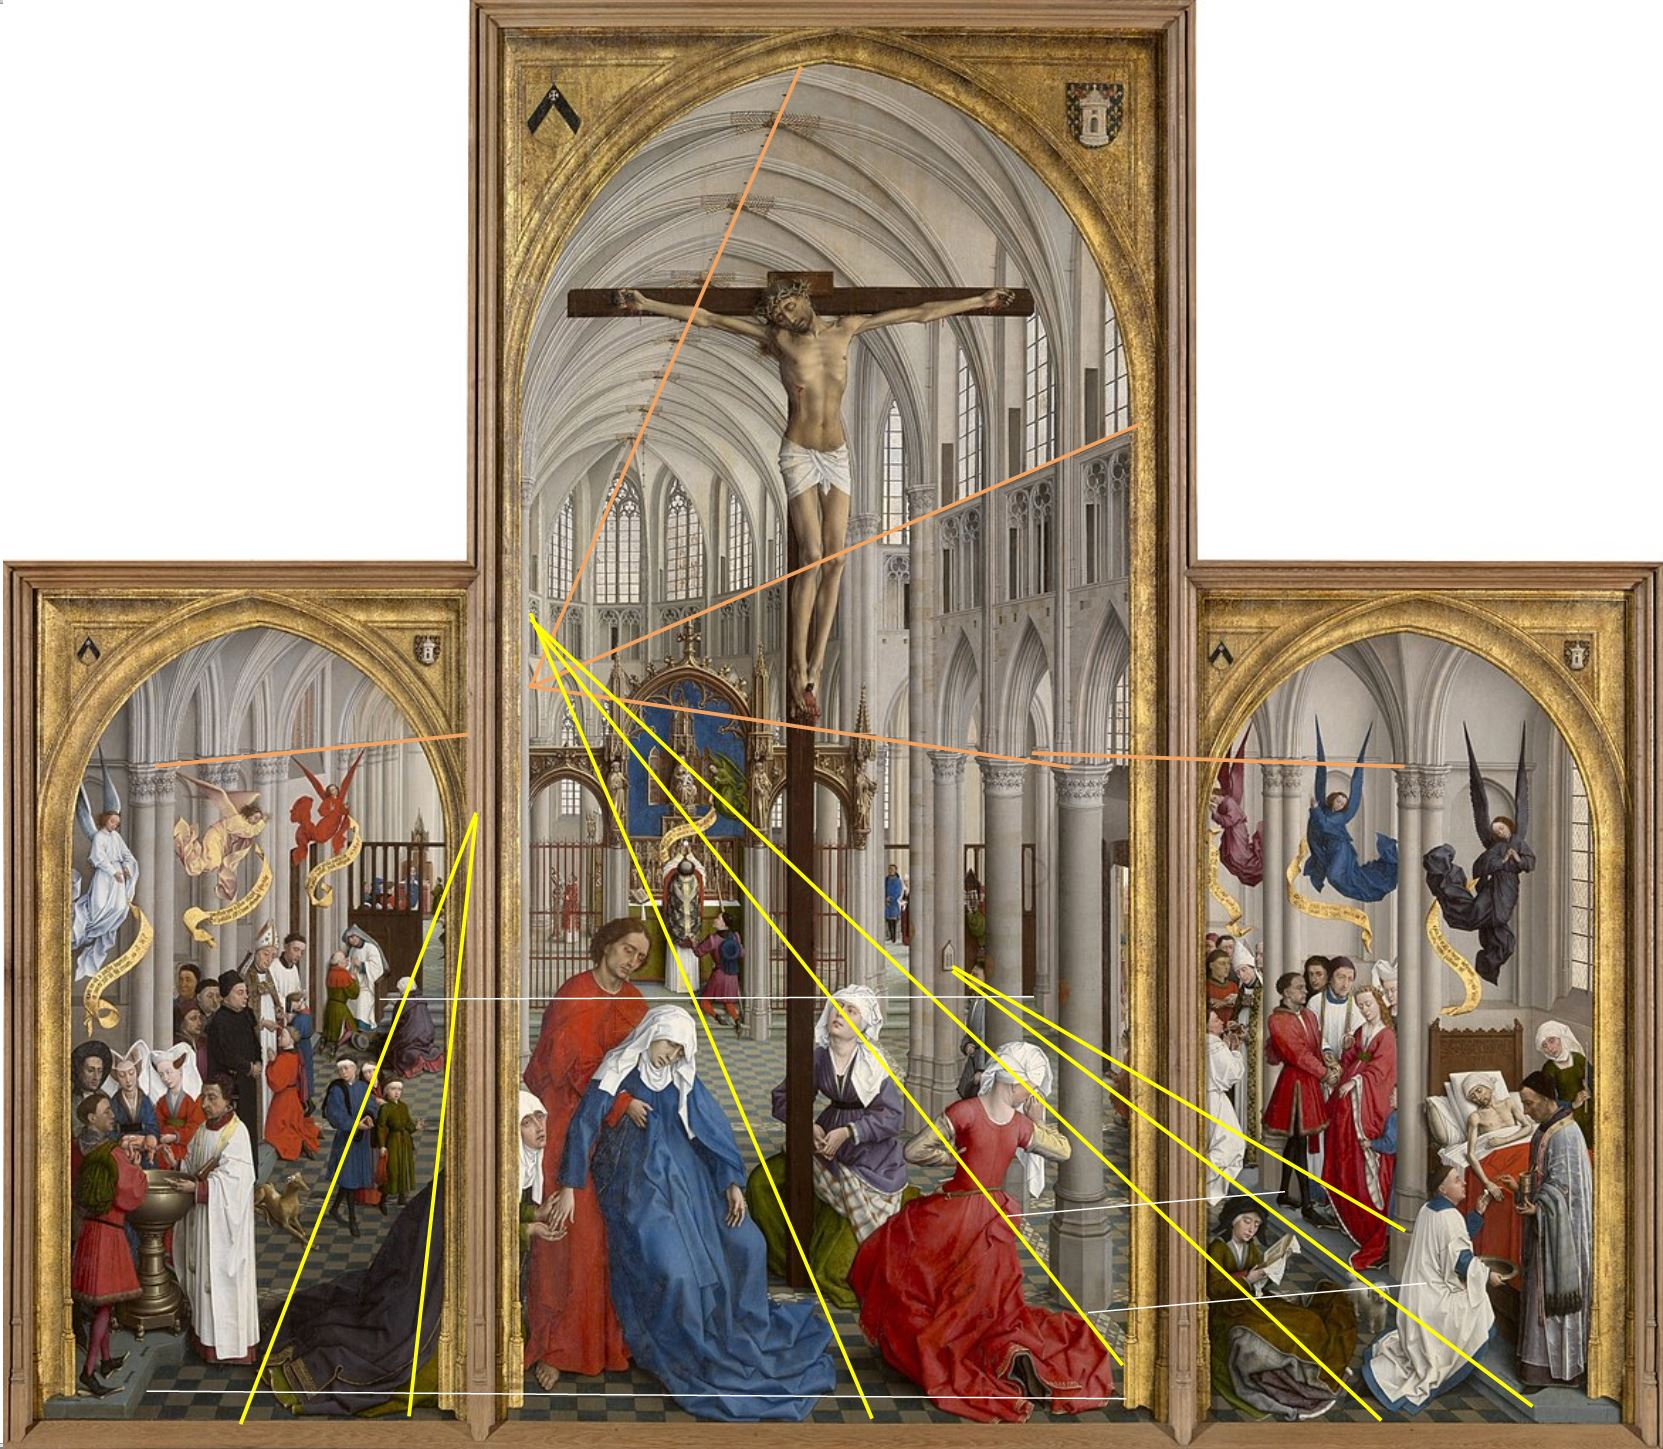 Van der Weyden 1445-50 Seven_Sacraments Altarpiece Royal Museum of Fine Arts Antwerp percpective